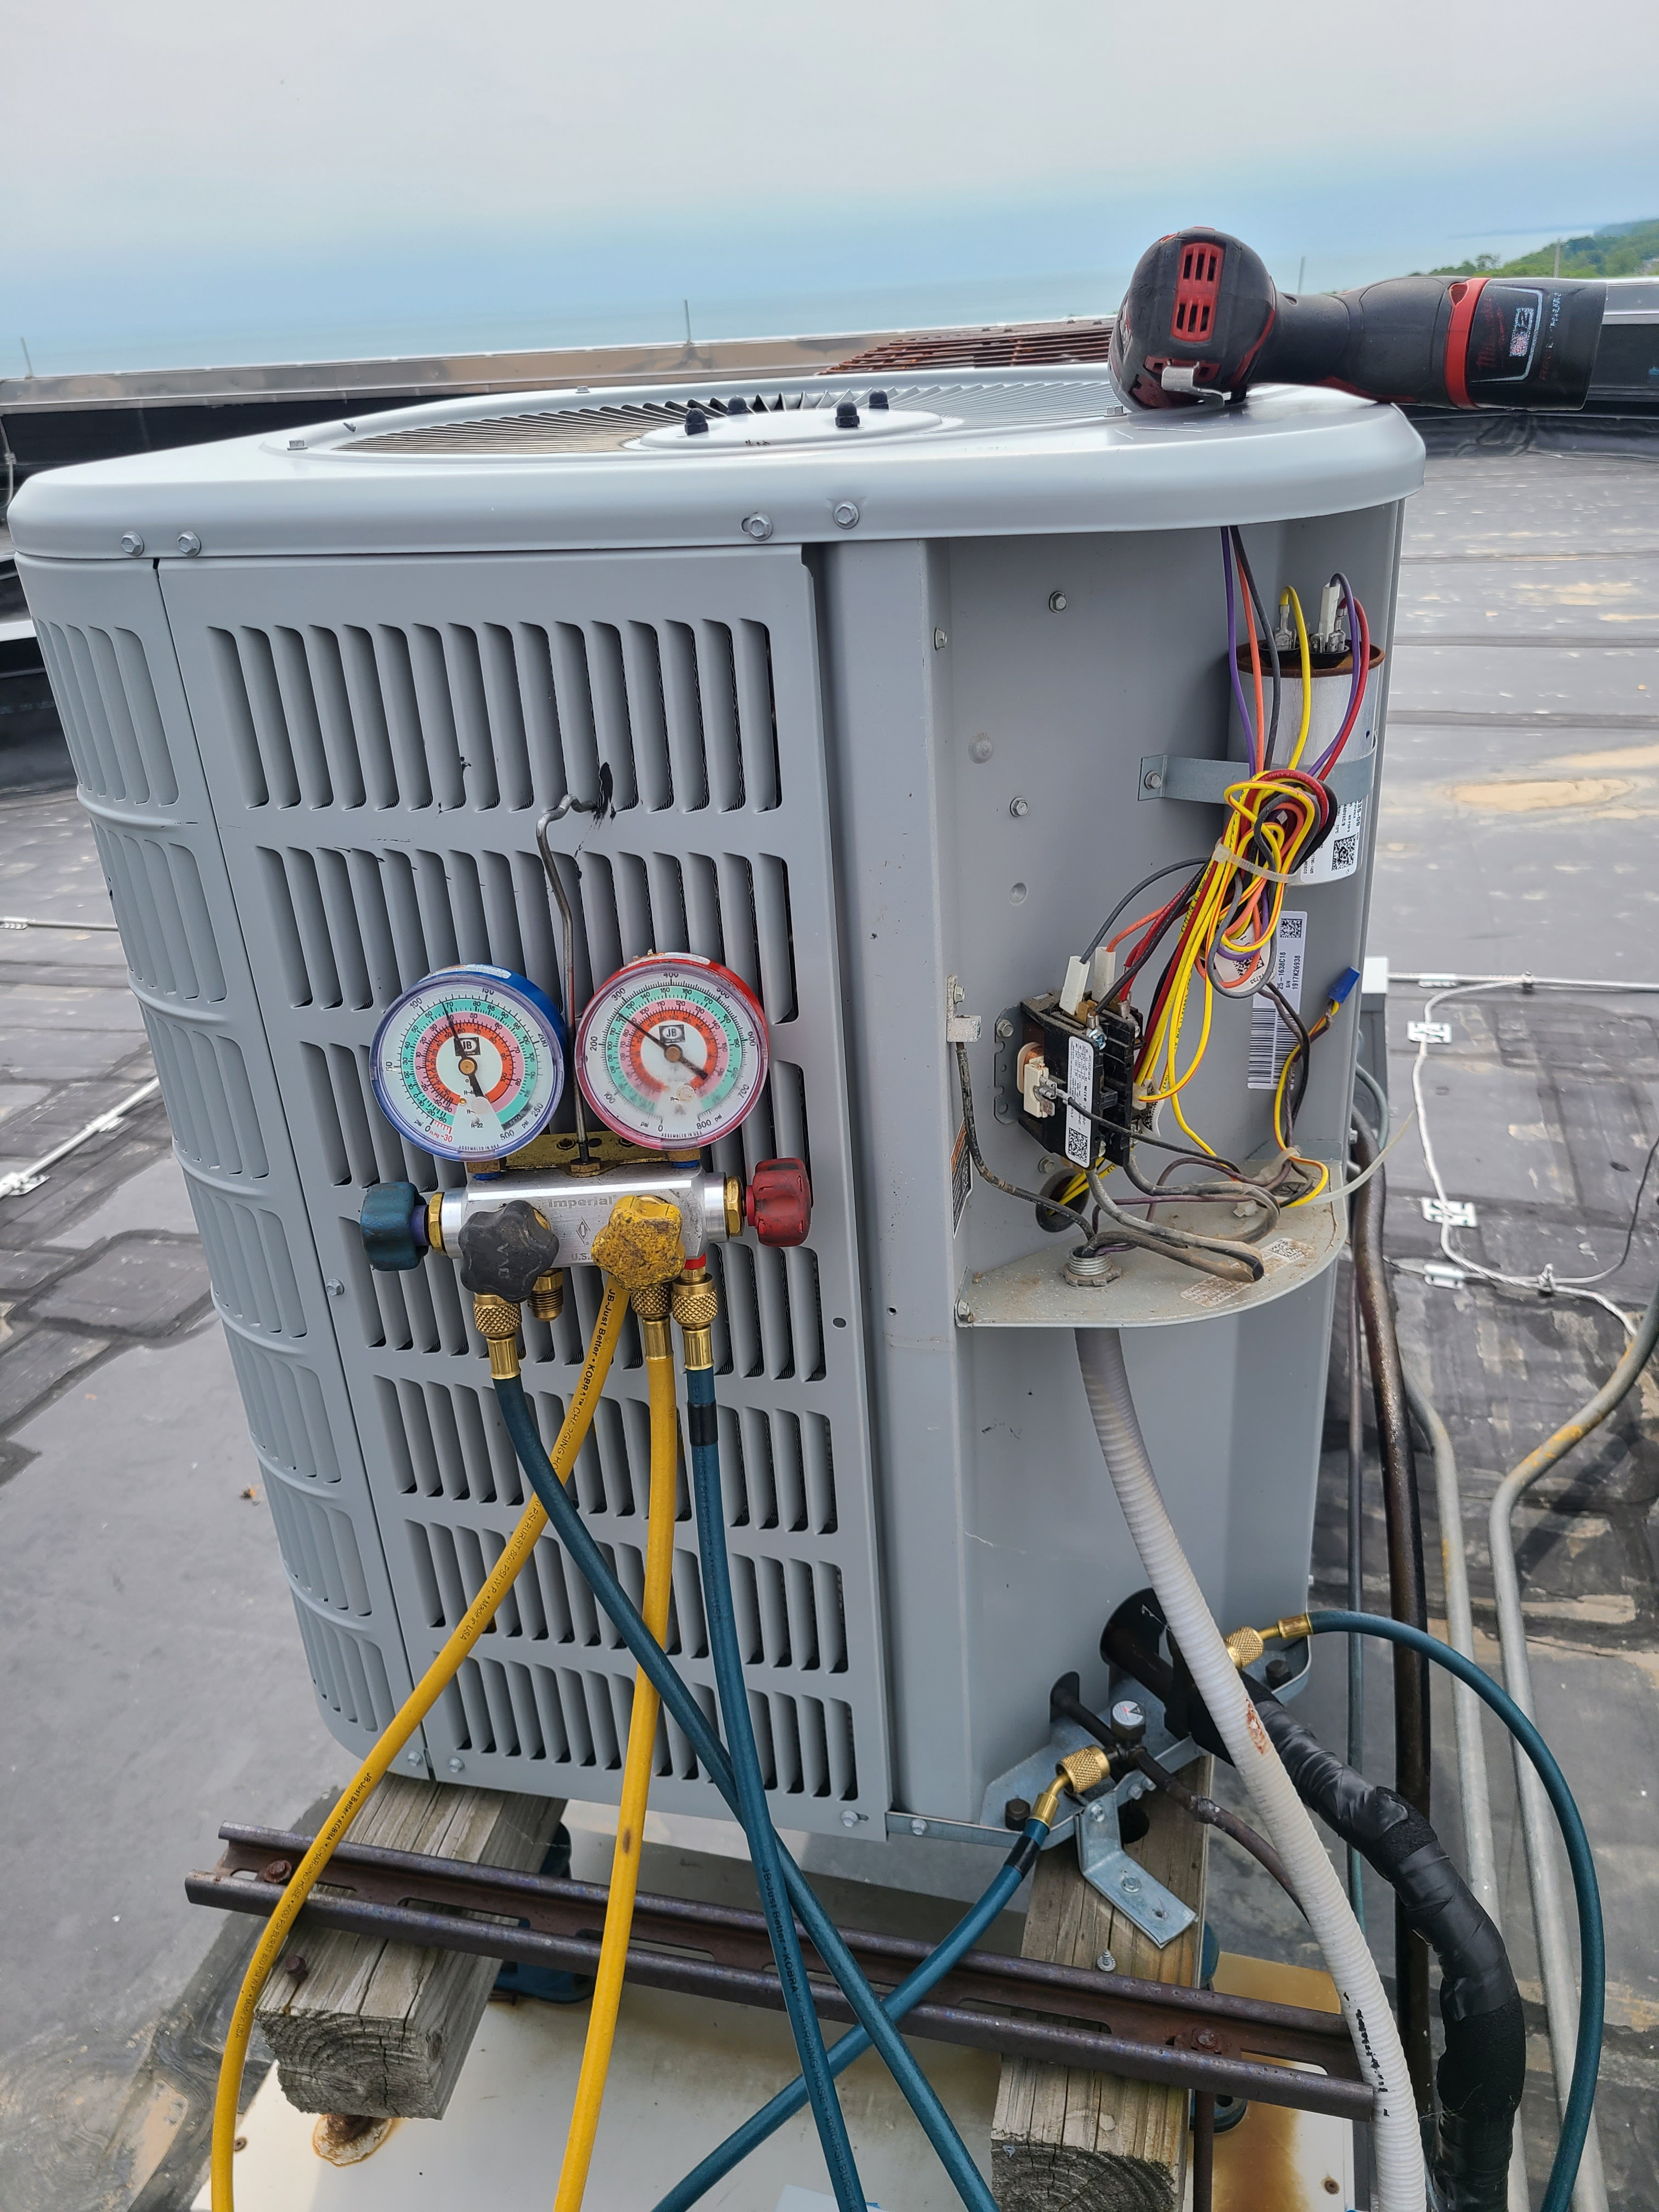 Ducane summer ac clean and check. System tuned up and ready for summer.